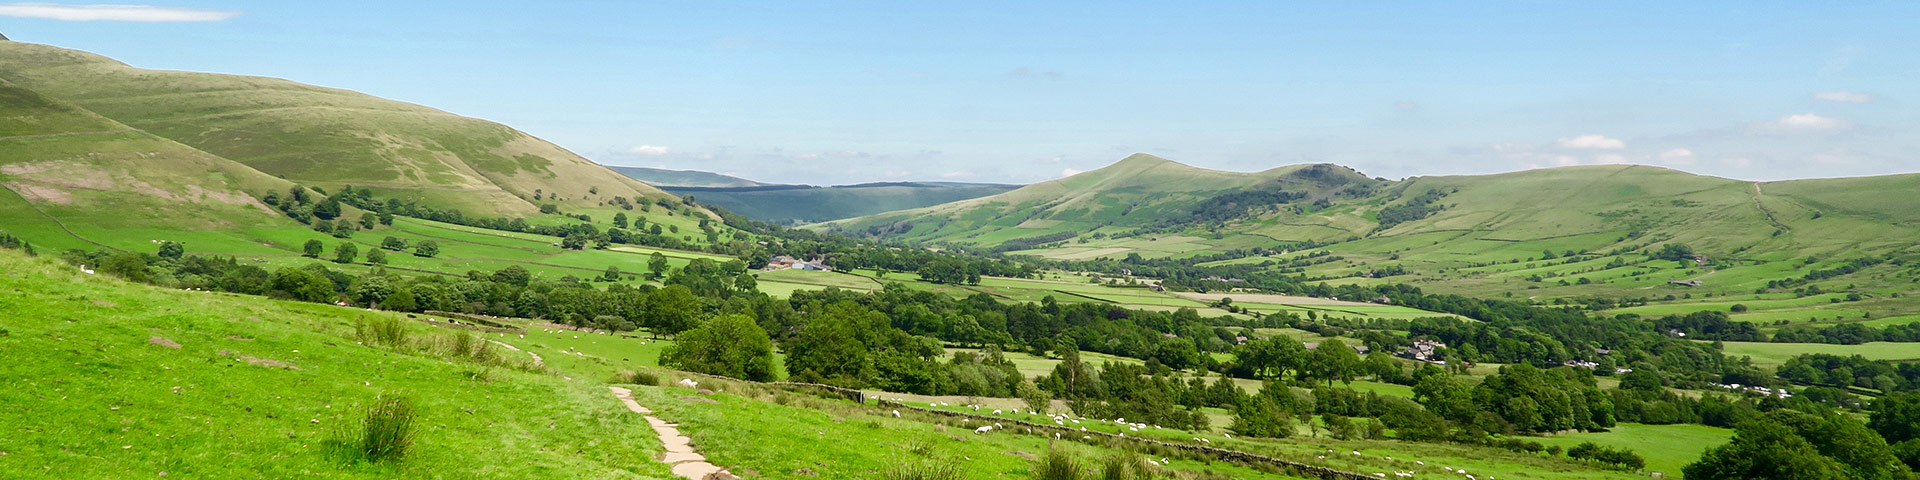 Panorama of the Kinder Scout hike in Peak District, England